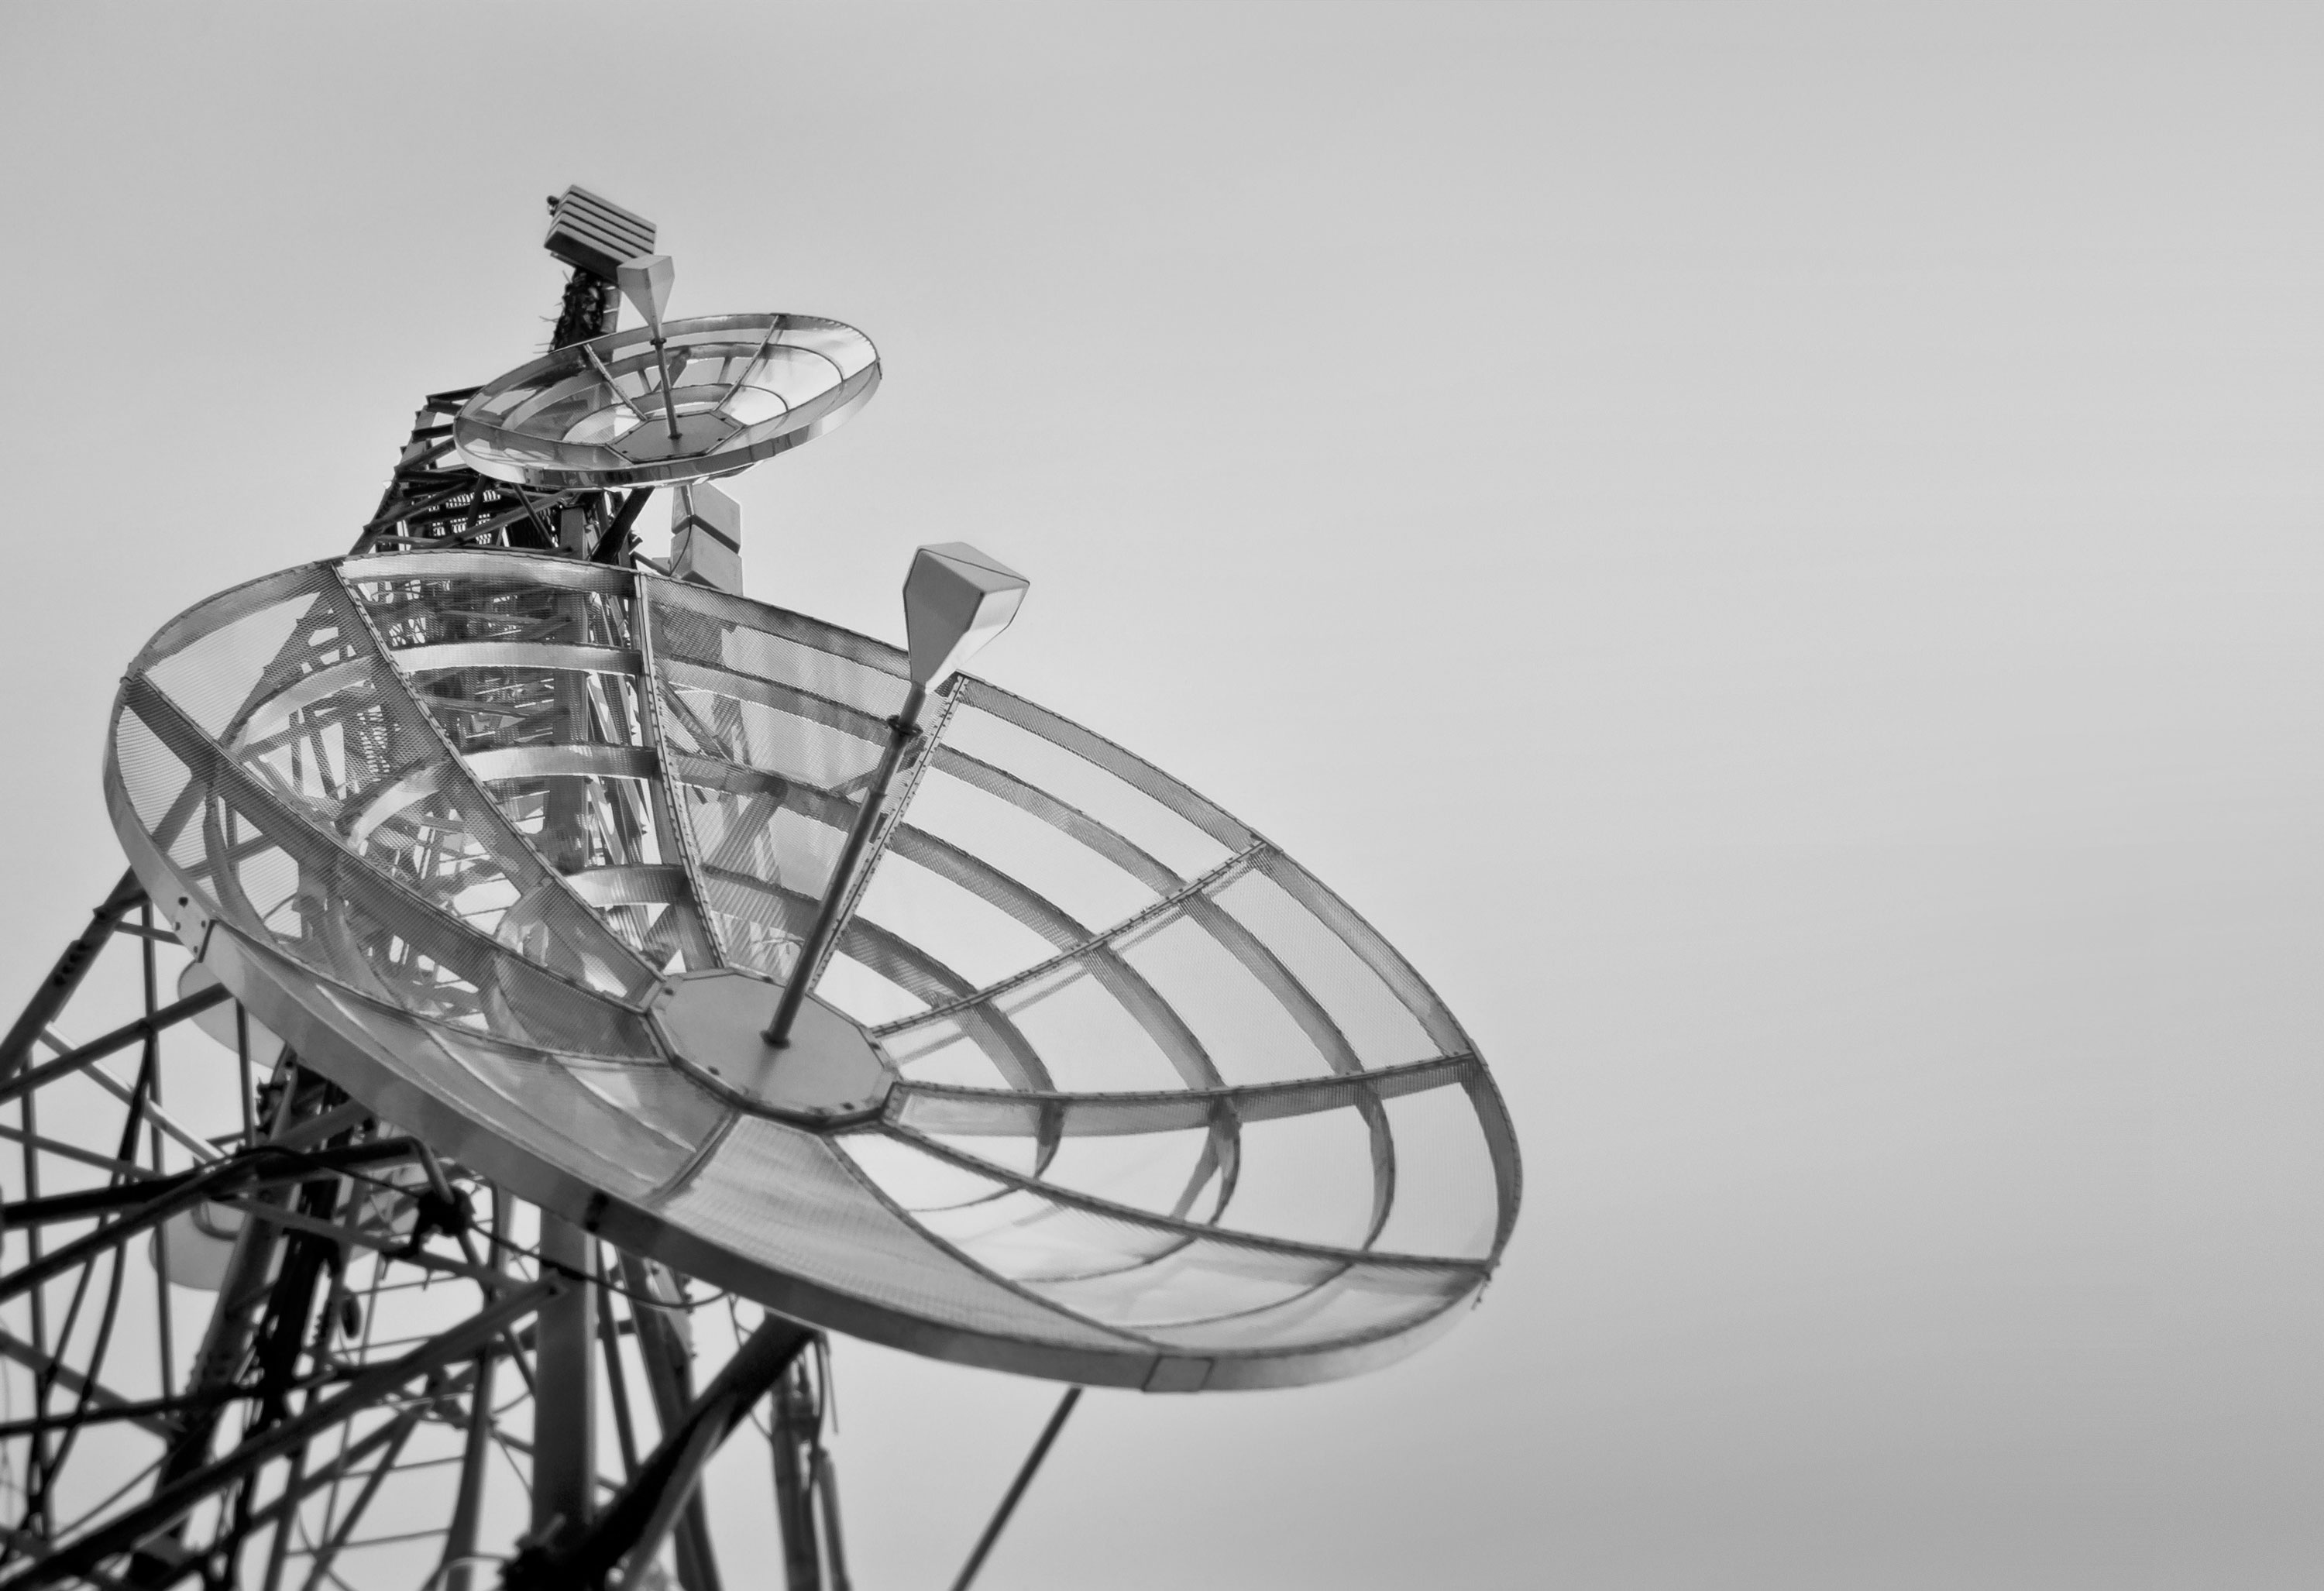 Engaging advanced analytics to combat telecommunications fraud